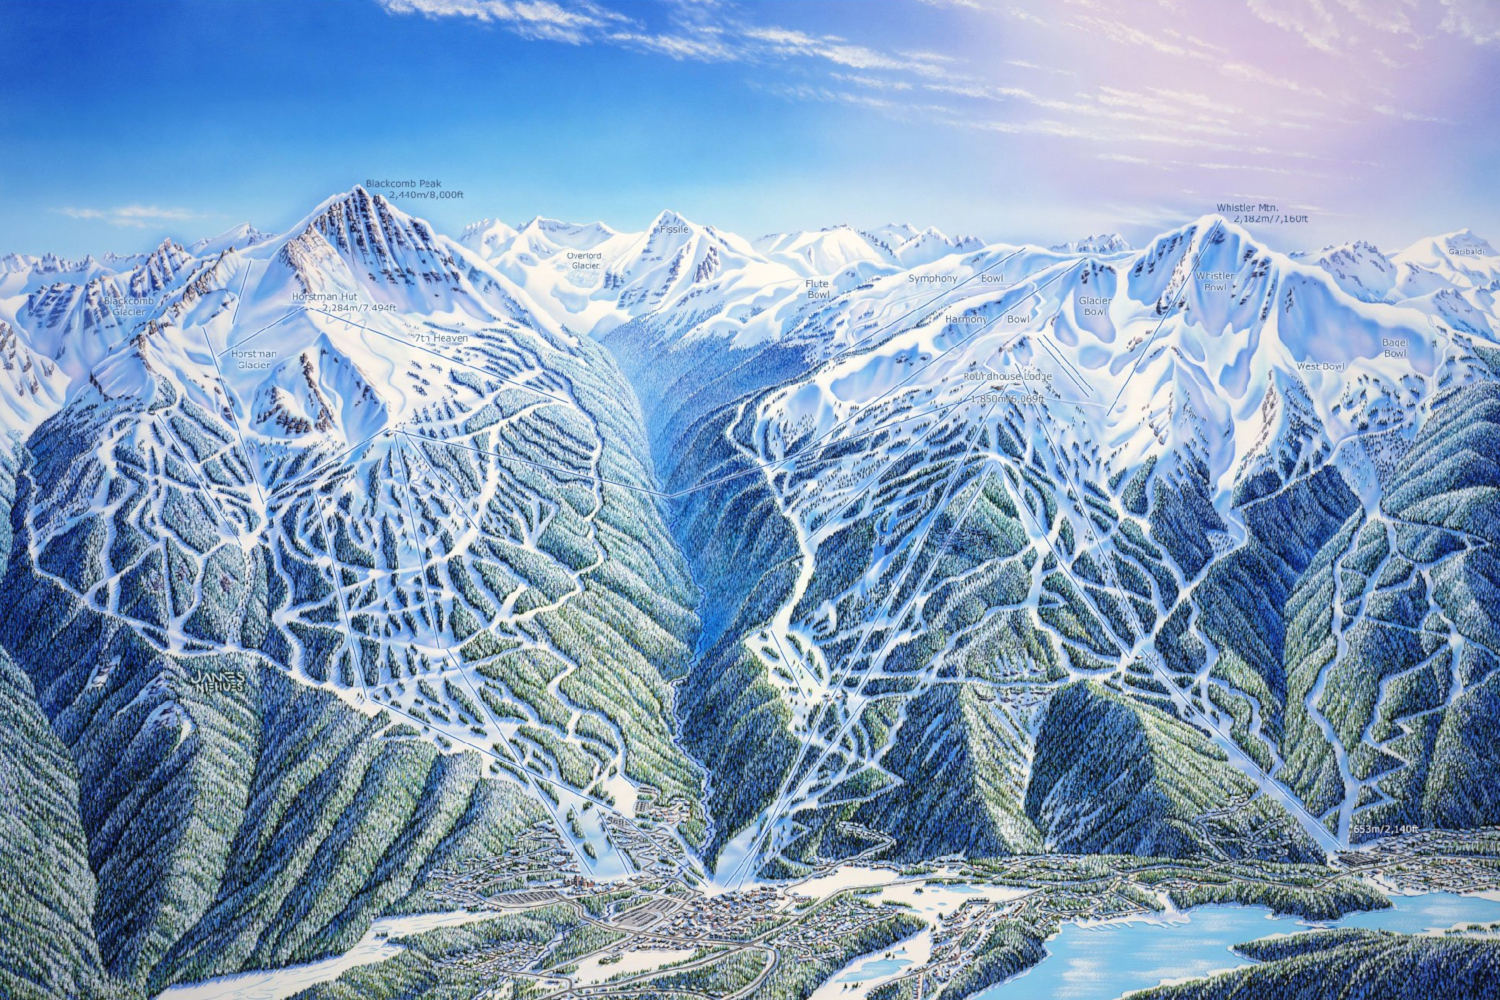 Original Piste Maps Art by James Niehues